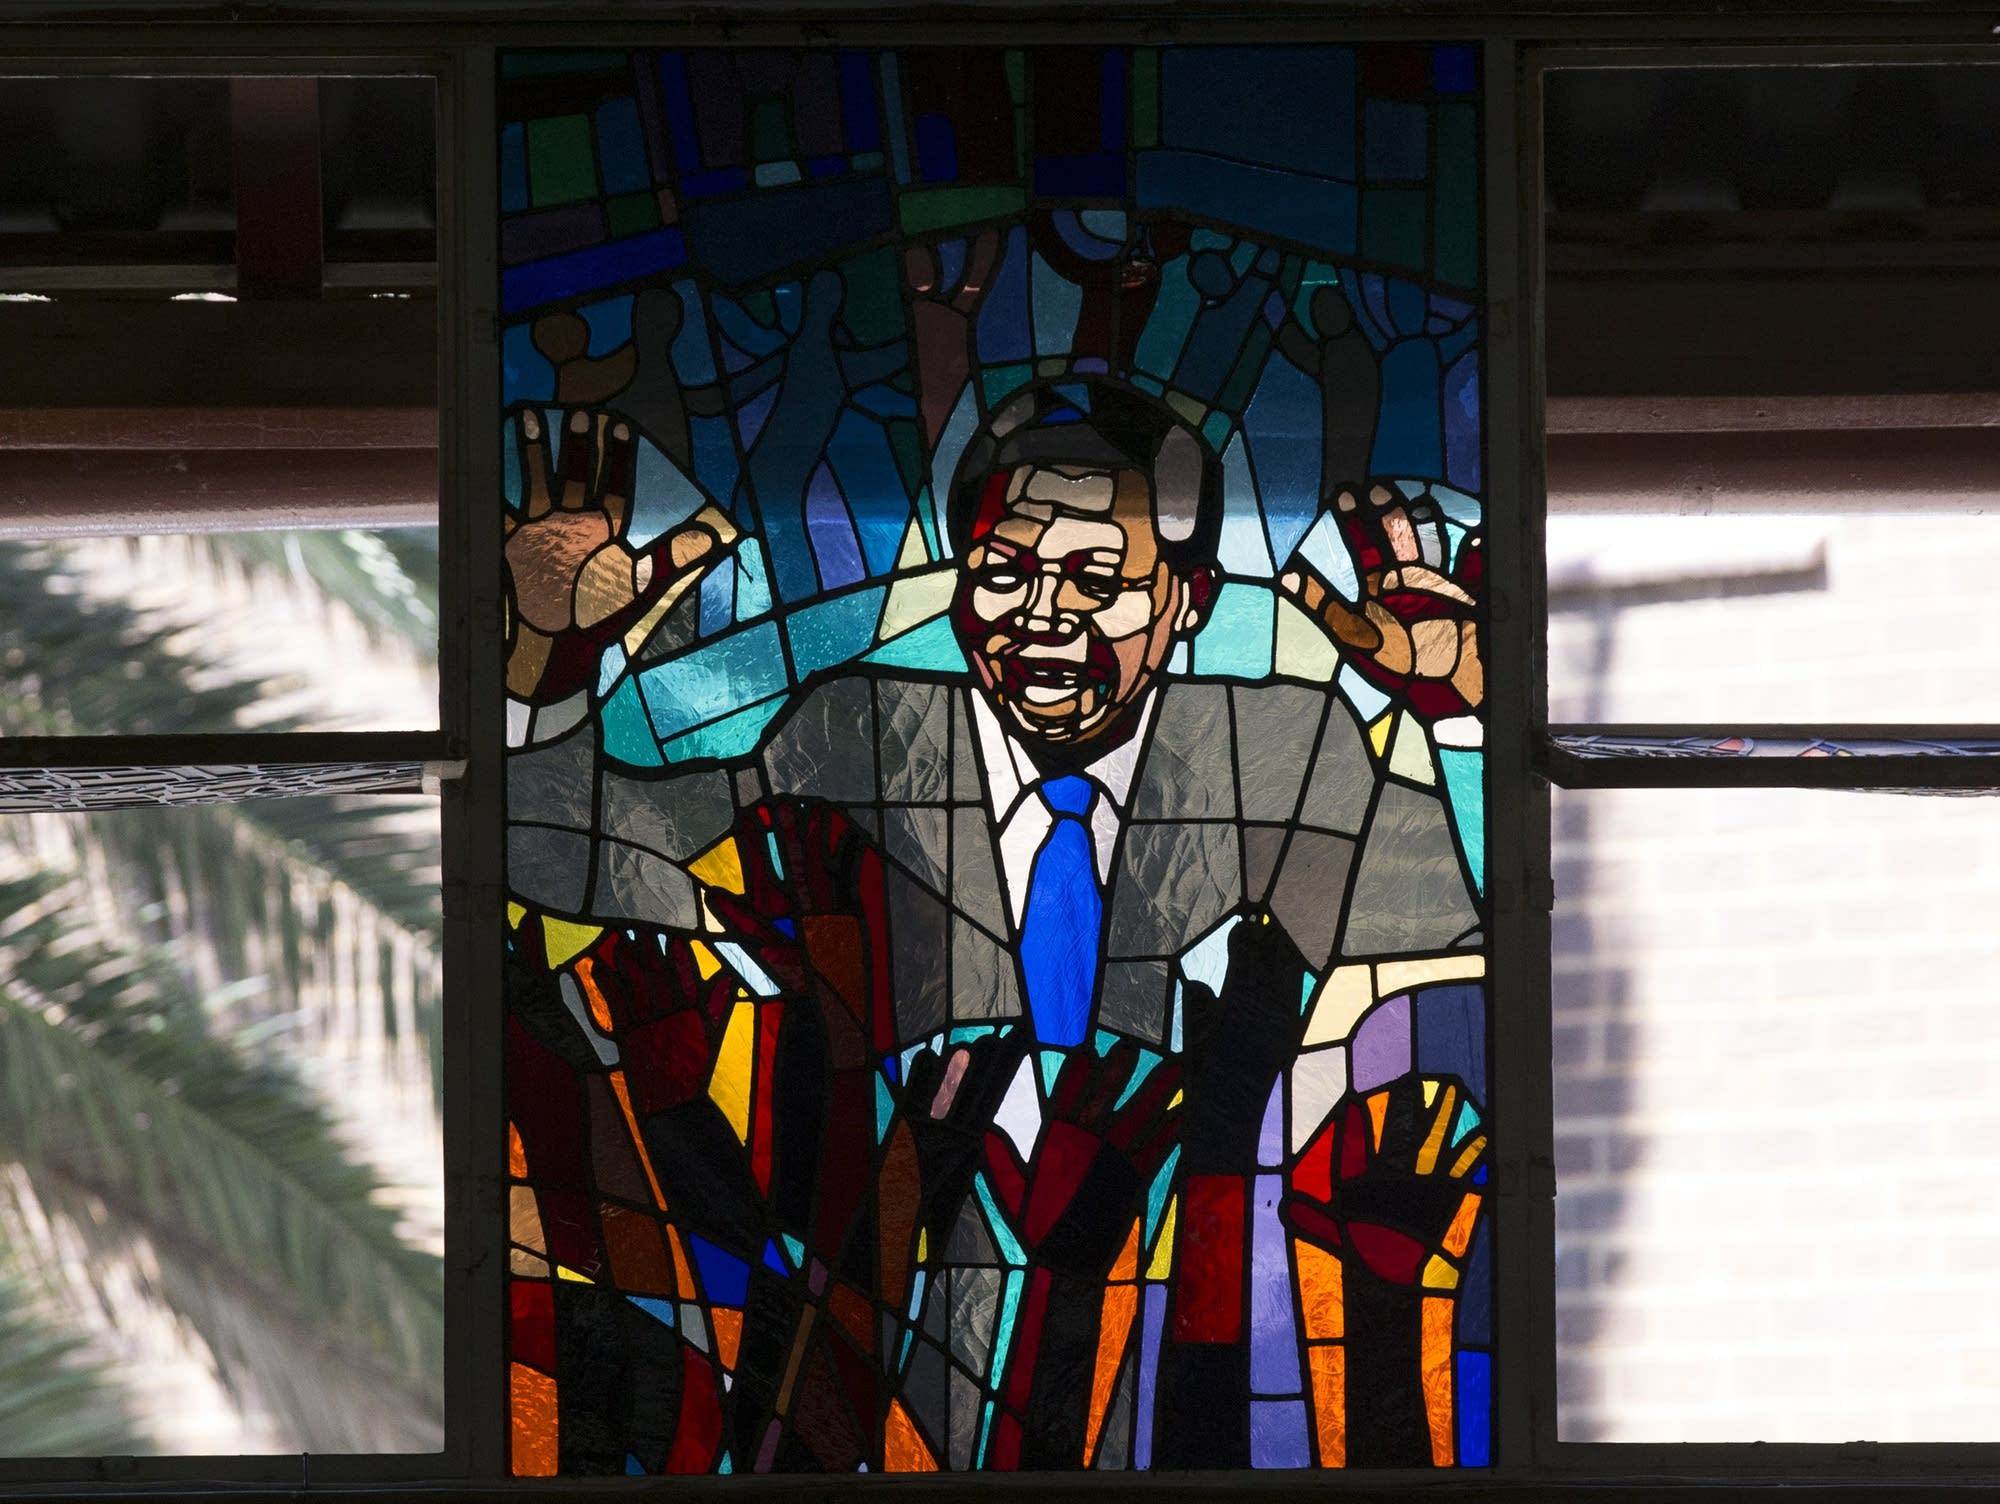 A stained-glass tribute to Nelson Mandela in Regina Mundi